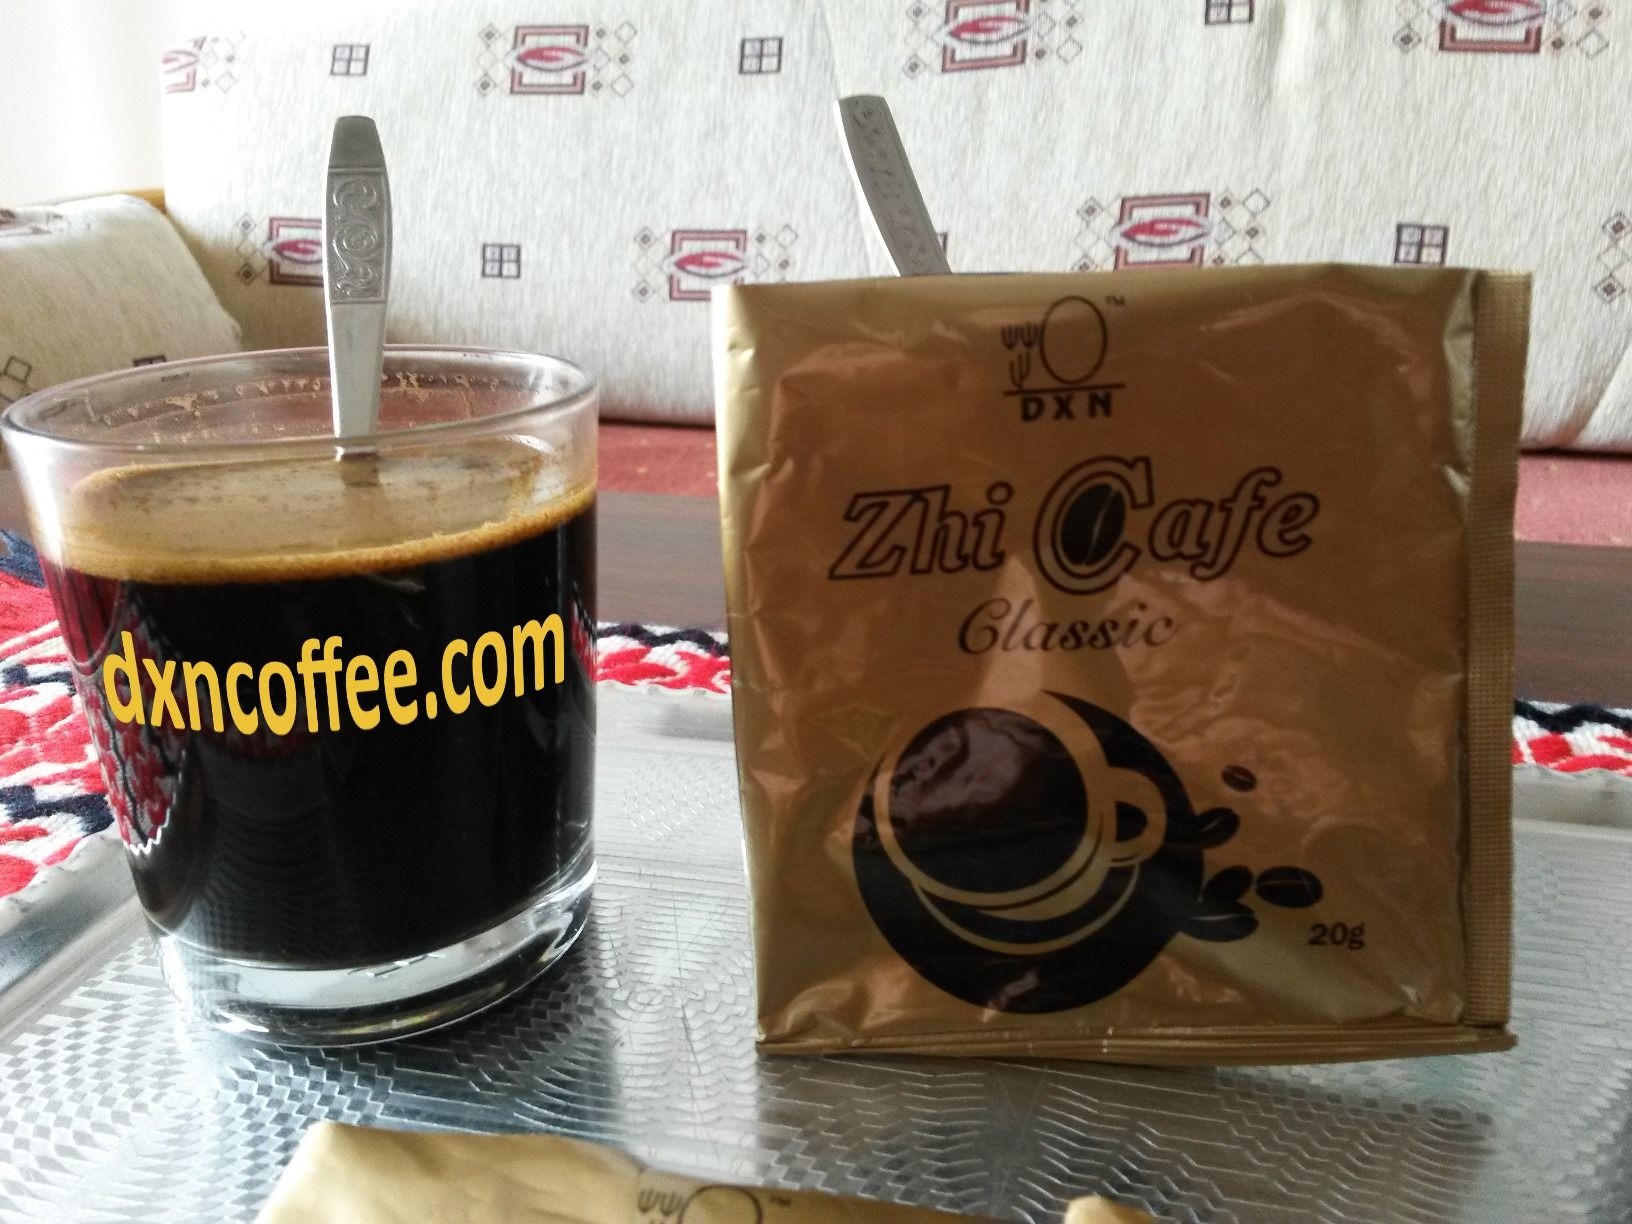 DXN MLM company's Zhi Coffee Classic - Turkish style healty coffee